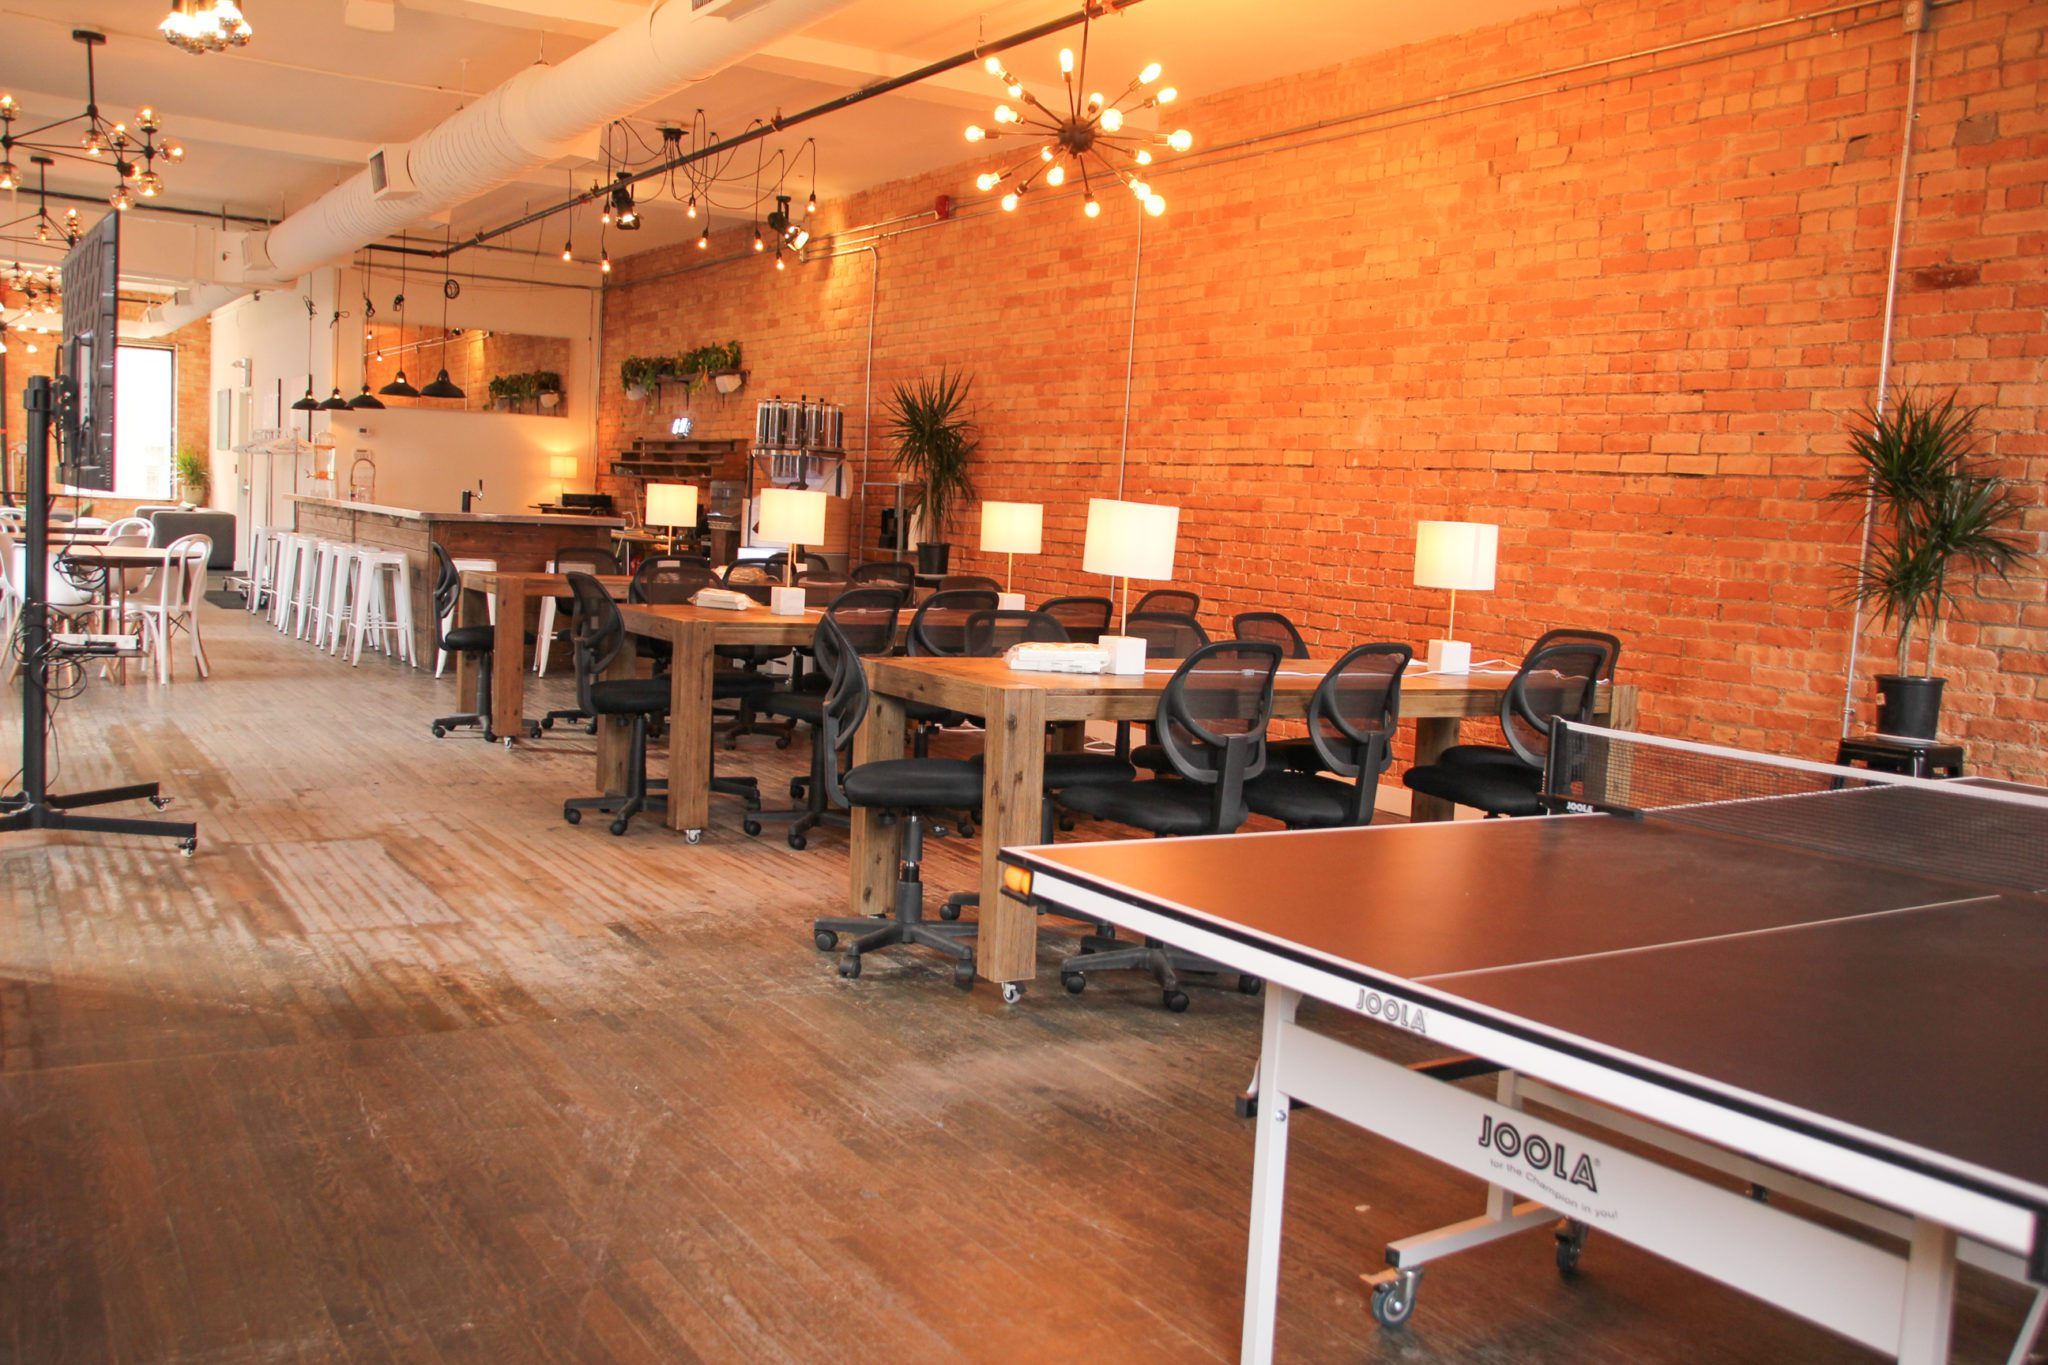 Startwell private event space on king street west